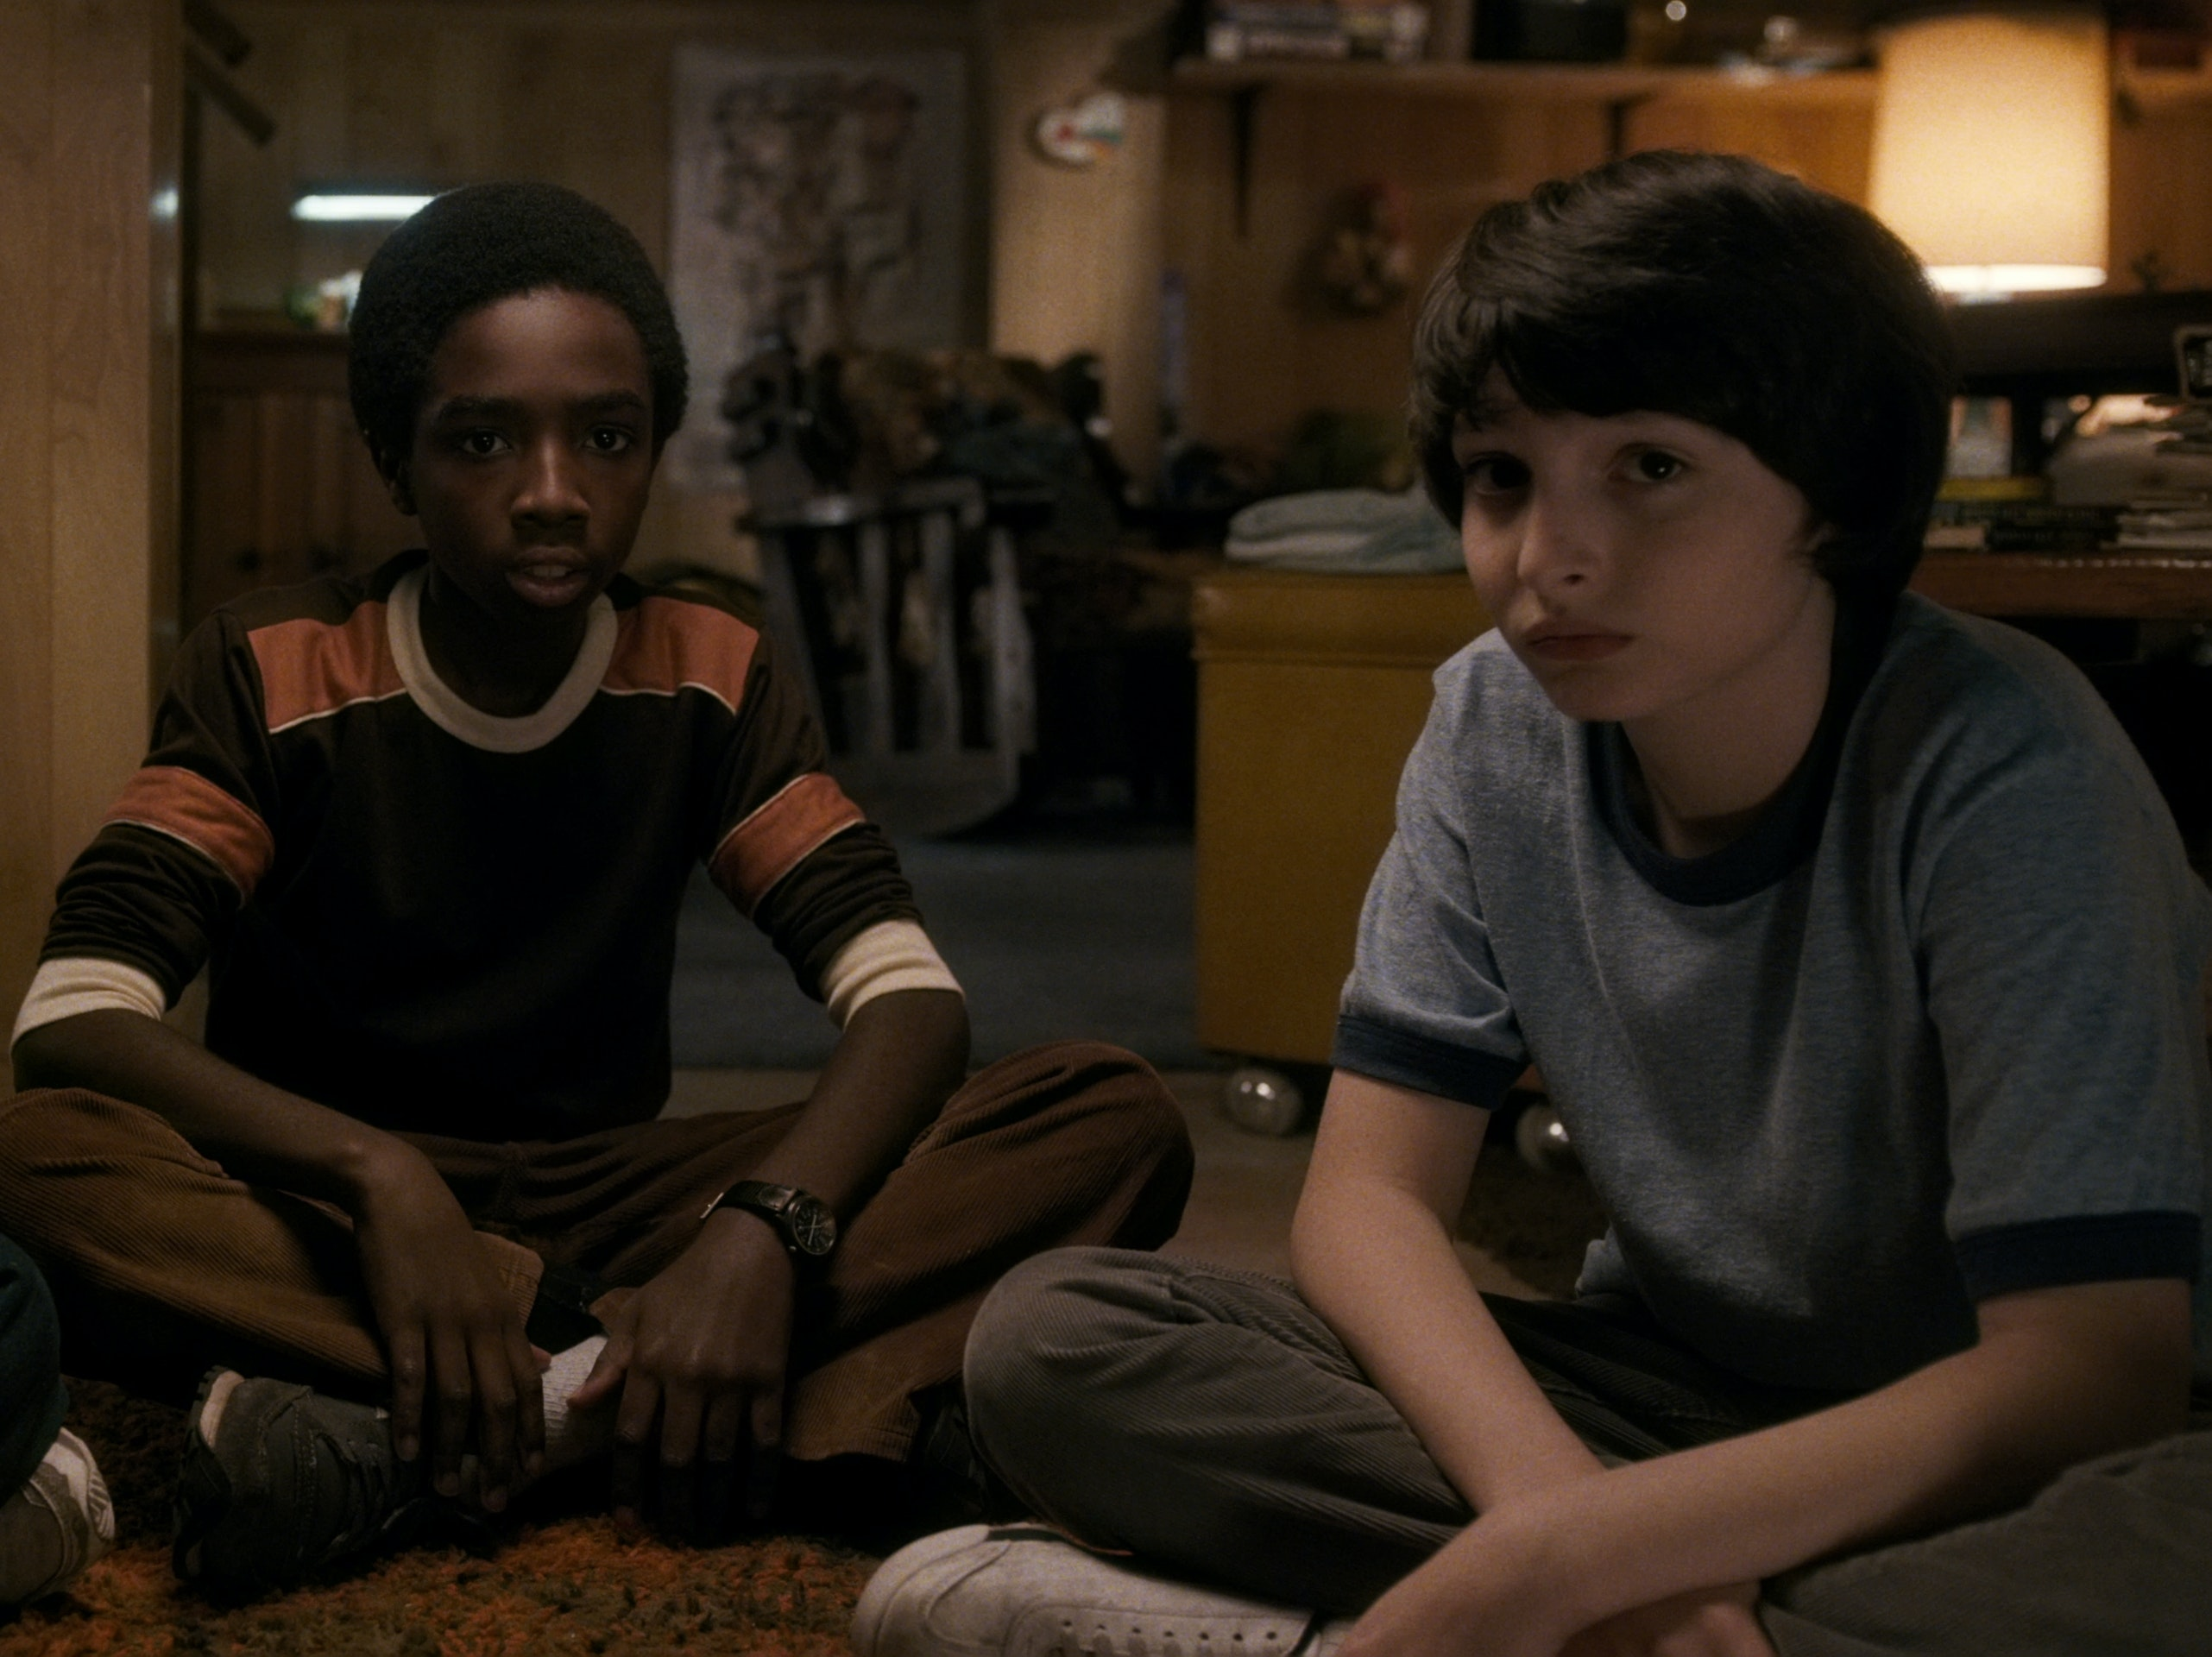 10 Great 80s Films That Could Inspire 'Stranger Things' Season 2